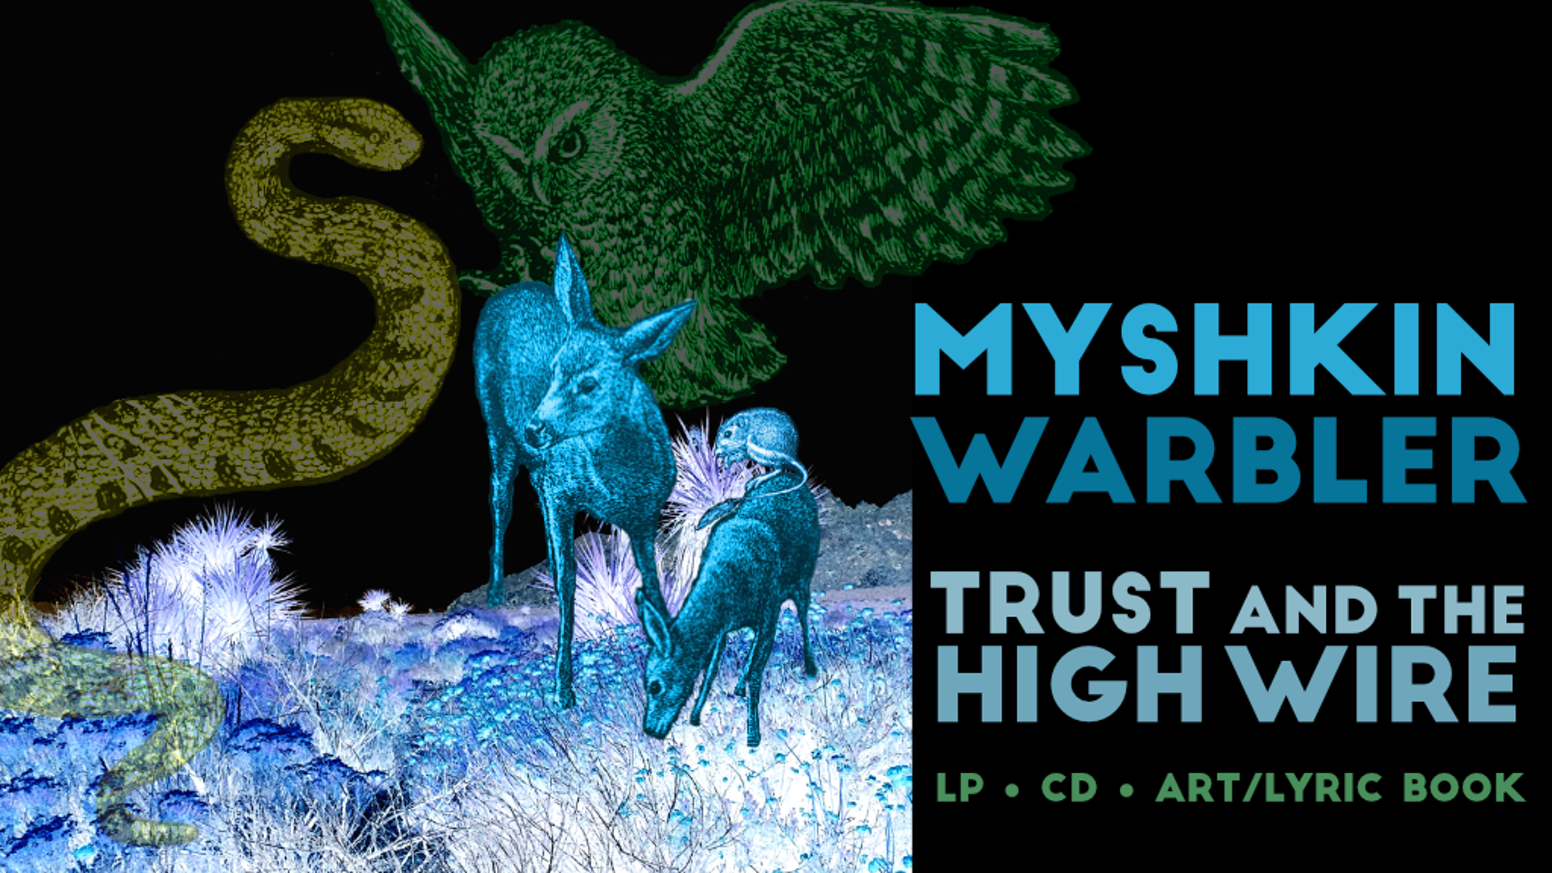 Trust and the High Wire — album by Myshkin Warbler